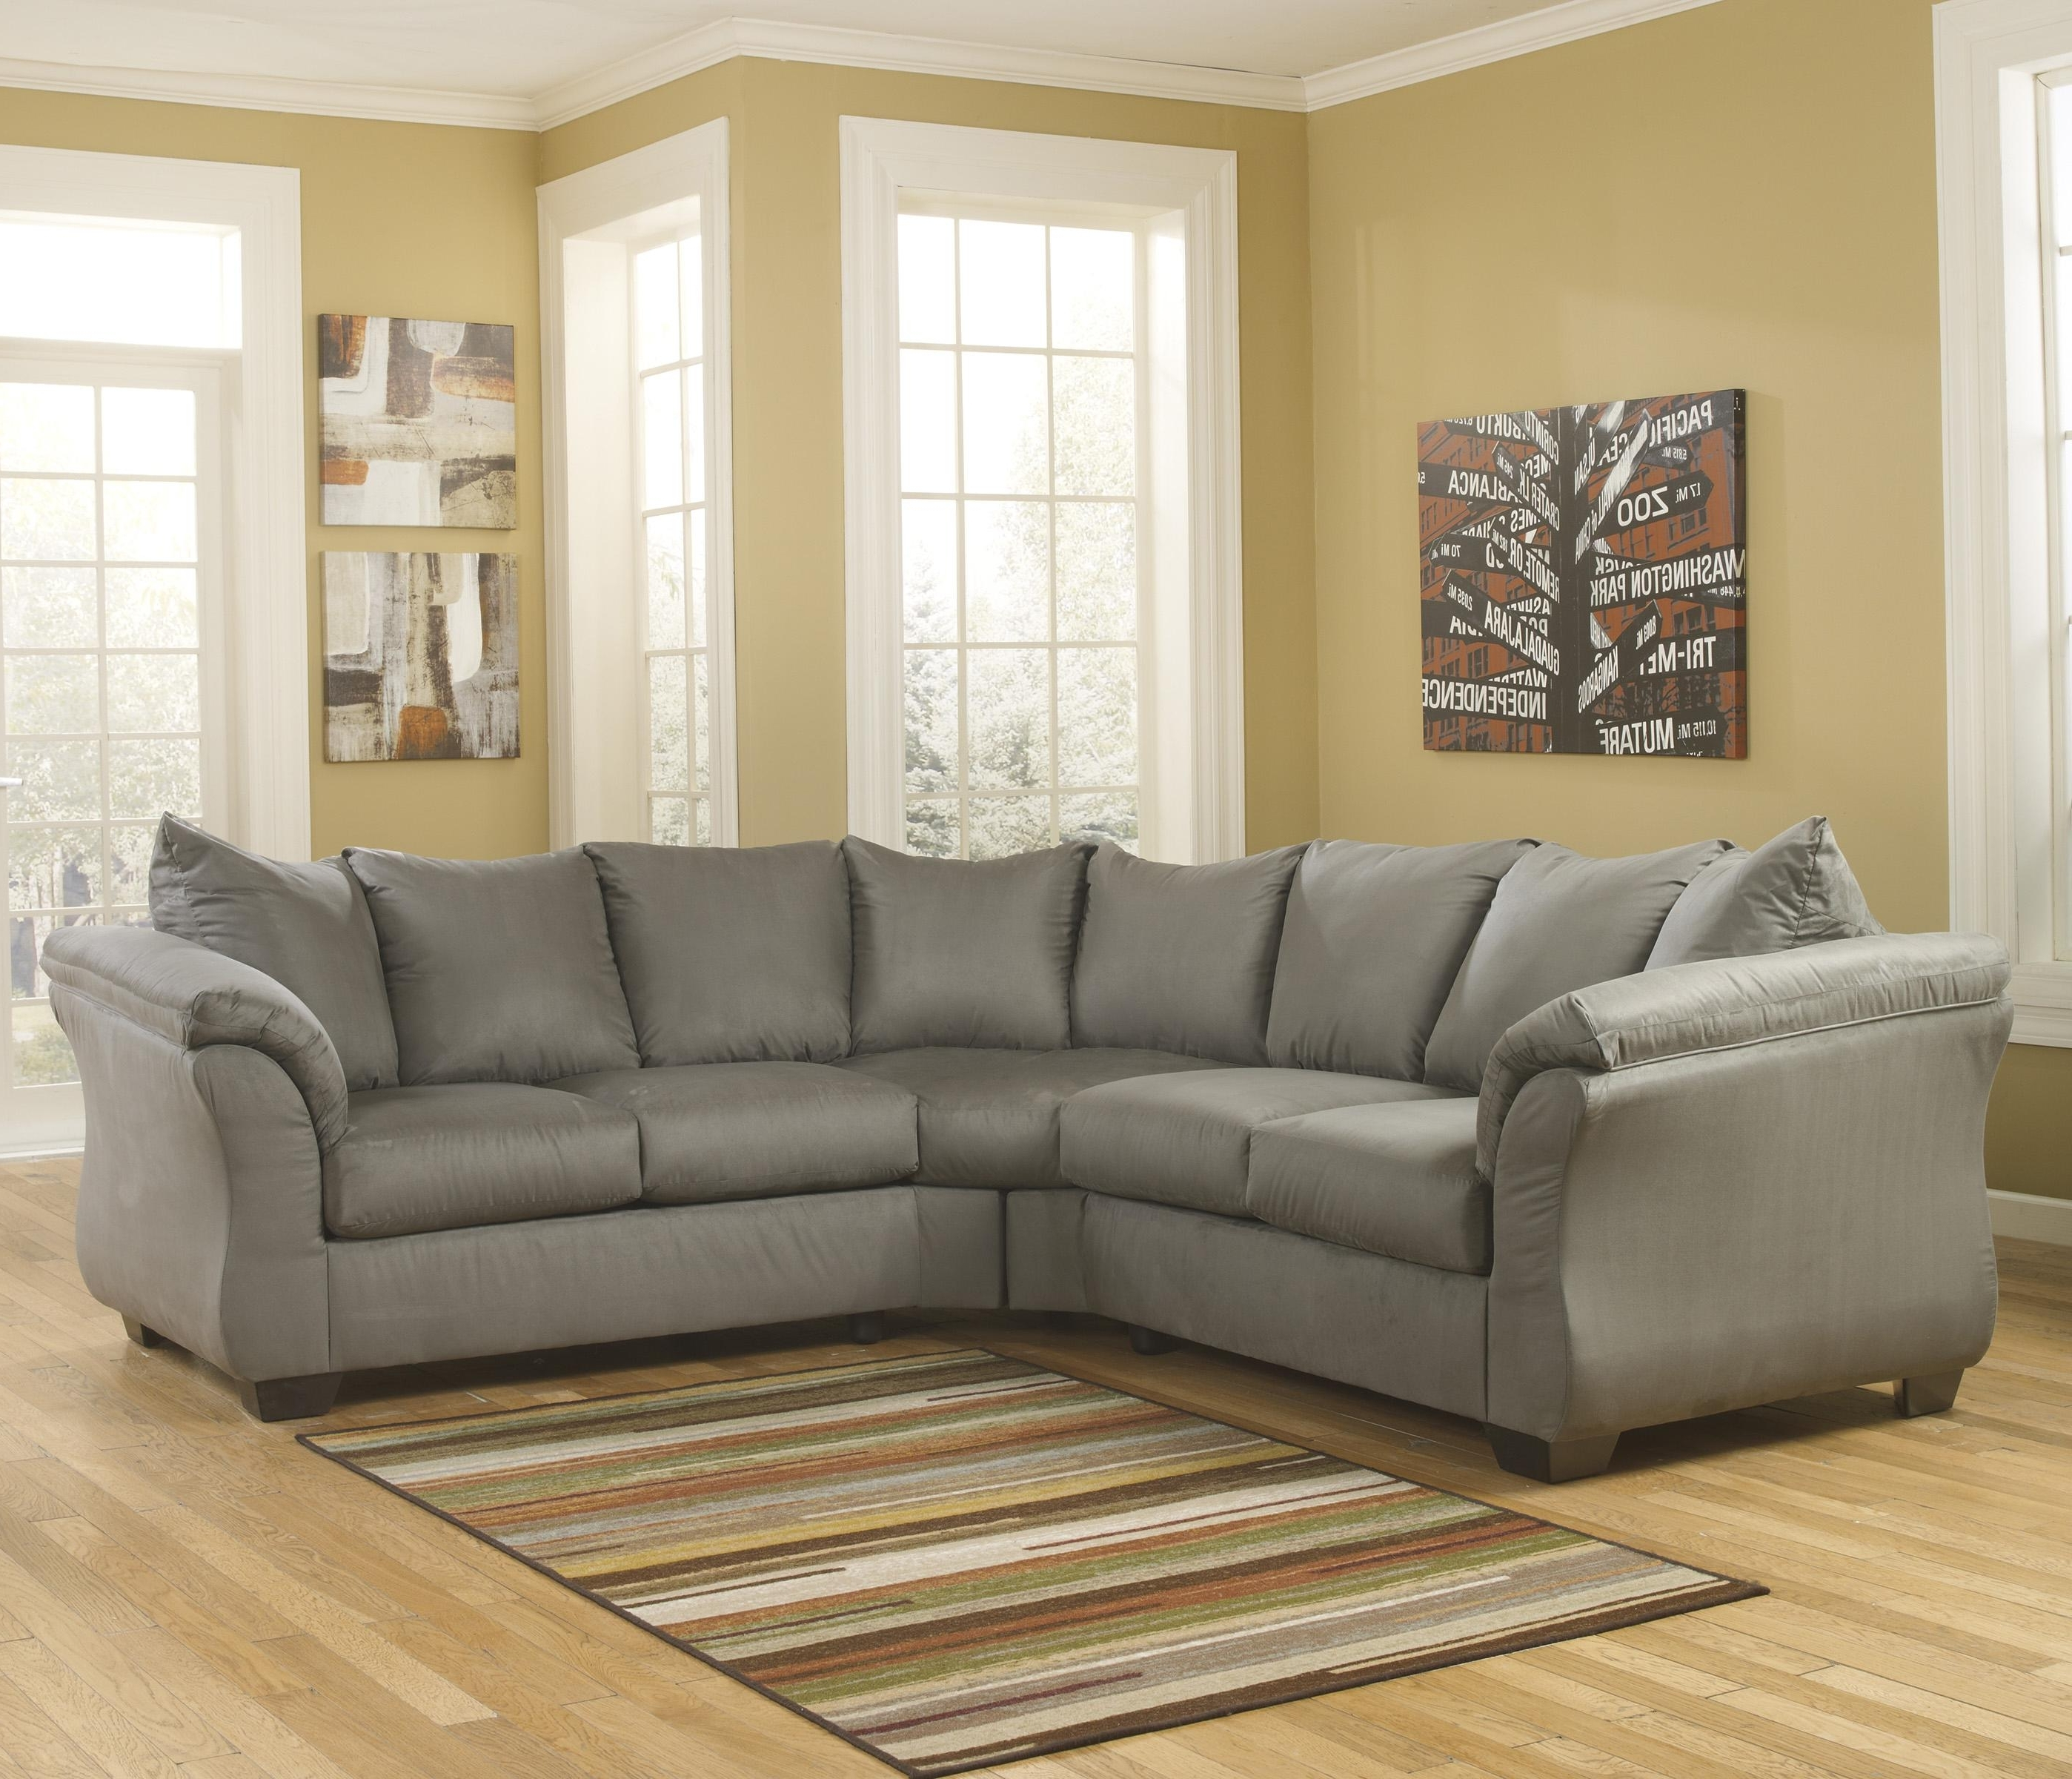 Eau Claire Wi Sectional Sofas Inside Well Liked Darcy – Cobblestone Sectional Sofasignature Designashley (View 3 of 20)